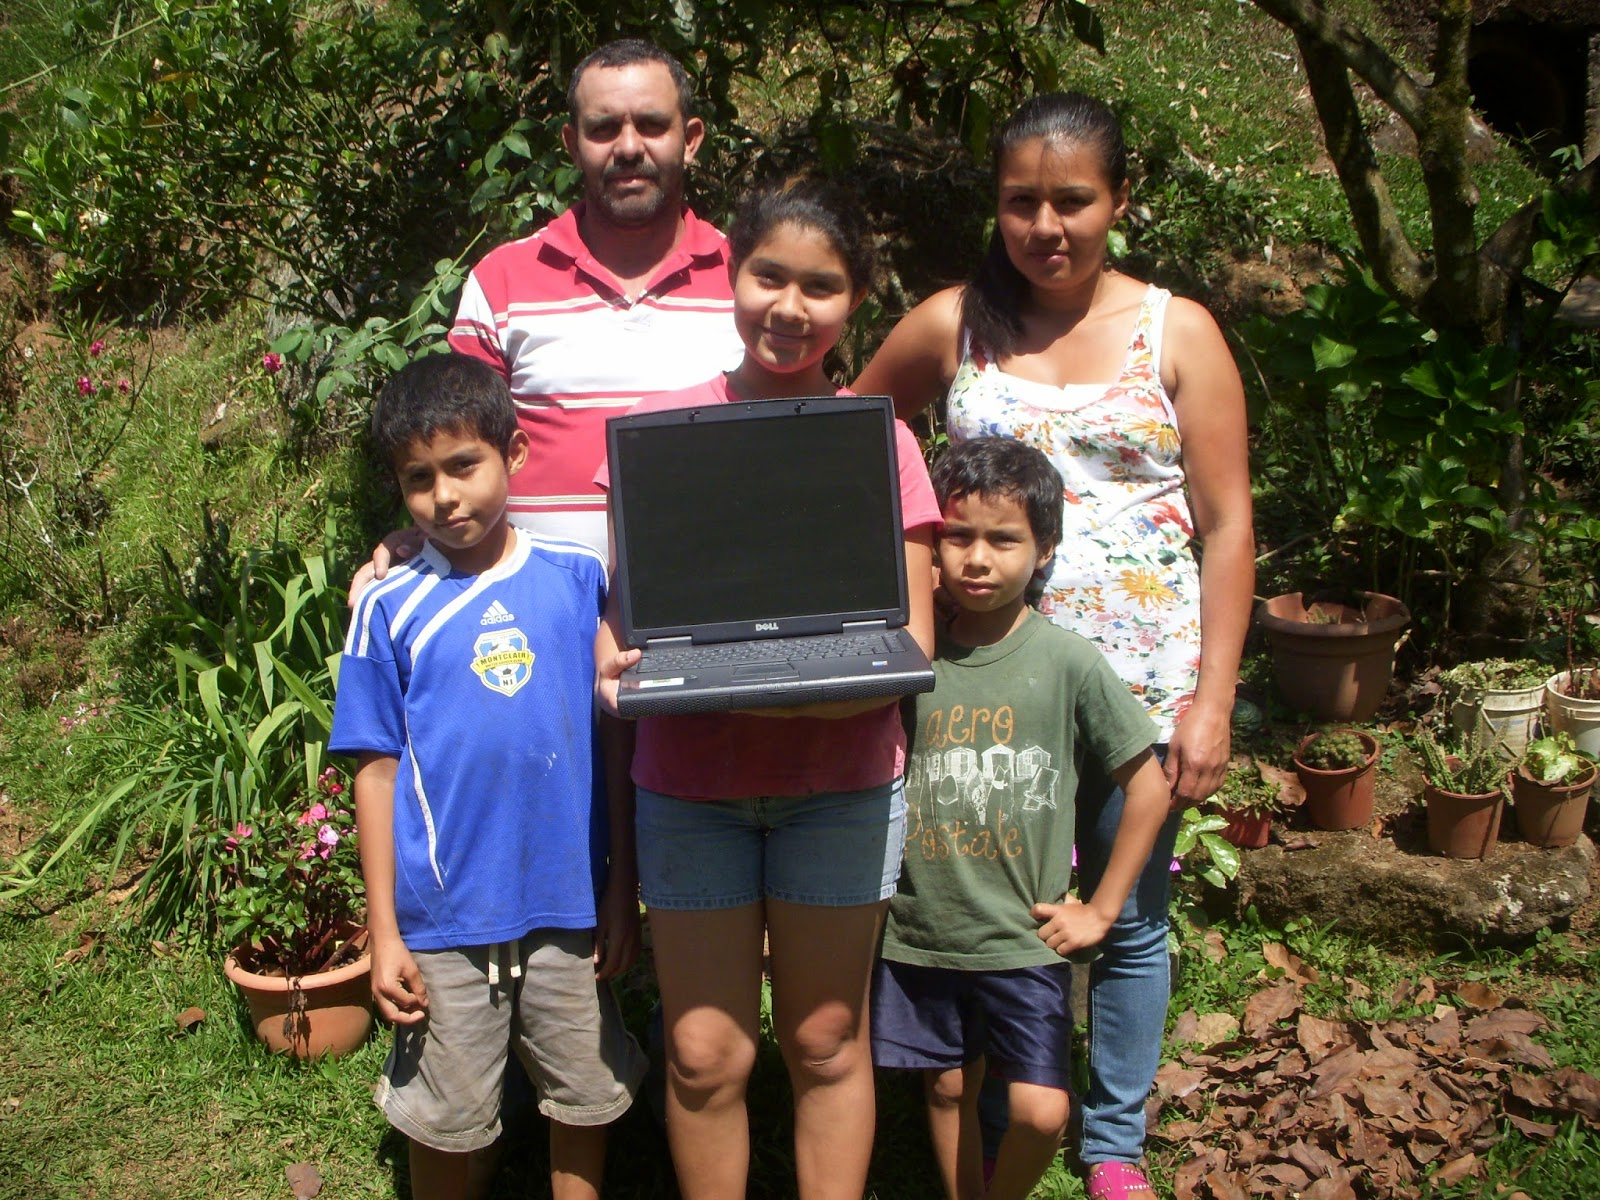 pedregosito family receives laptop from costa rica pc rescue